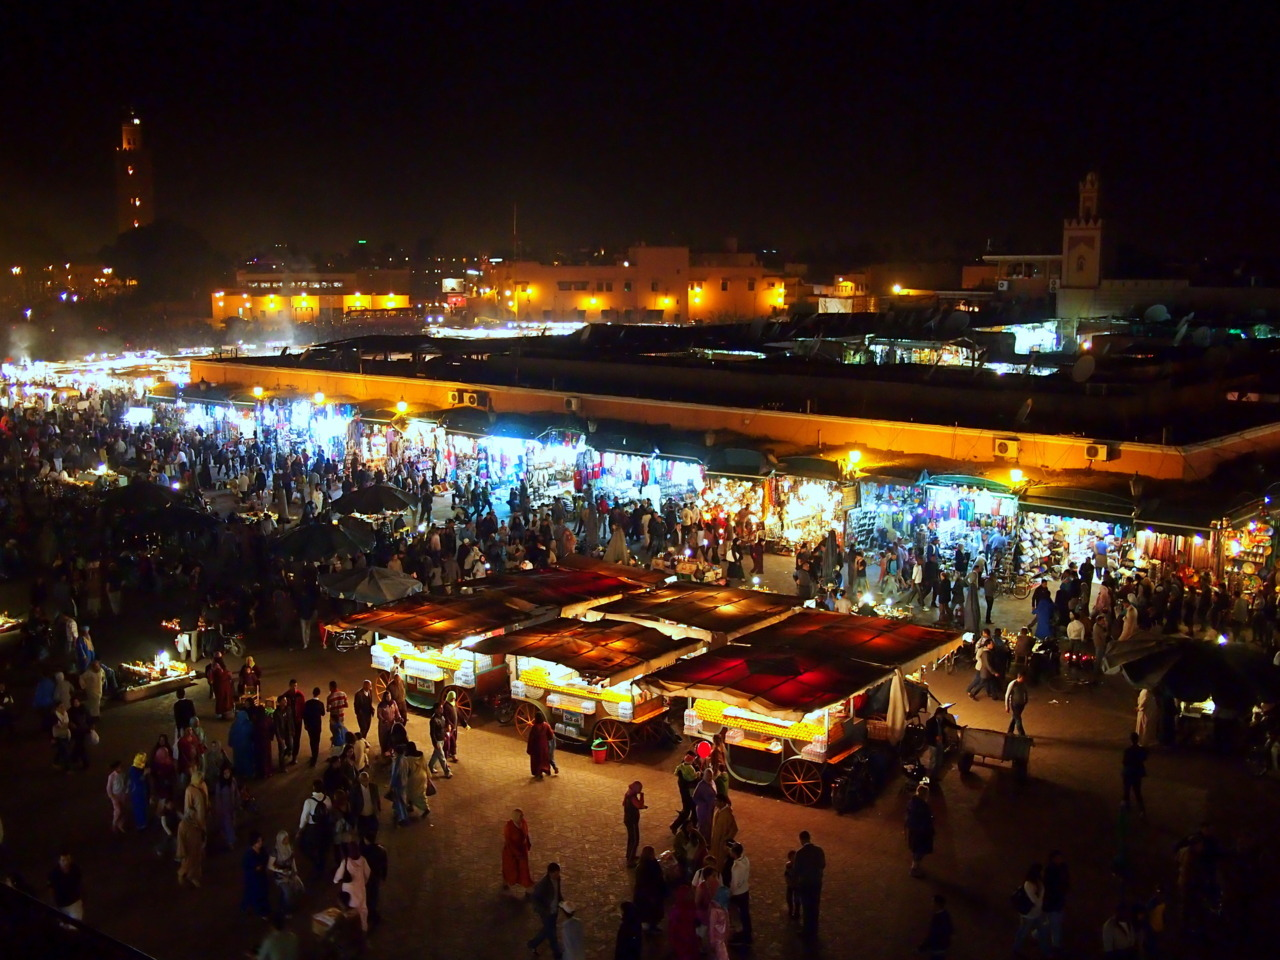 Sensory overload at Marrakesh's Djemaa el-Fna.